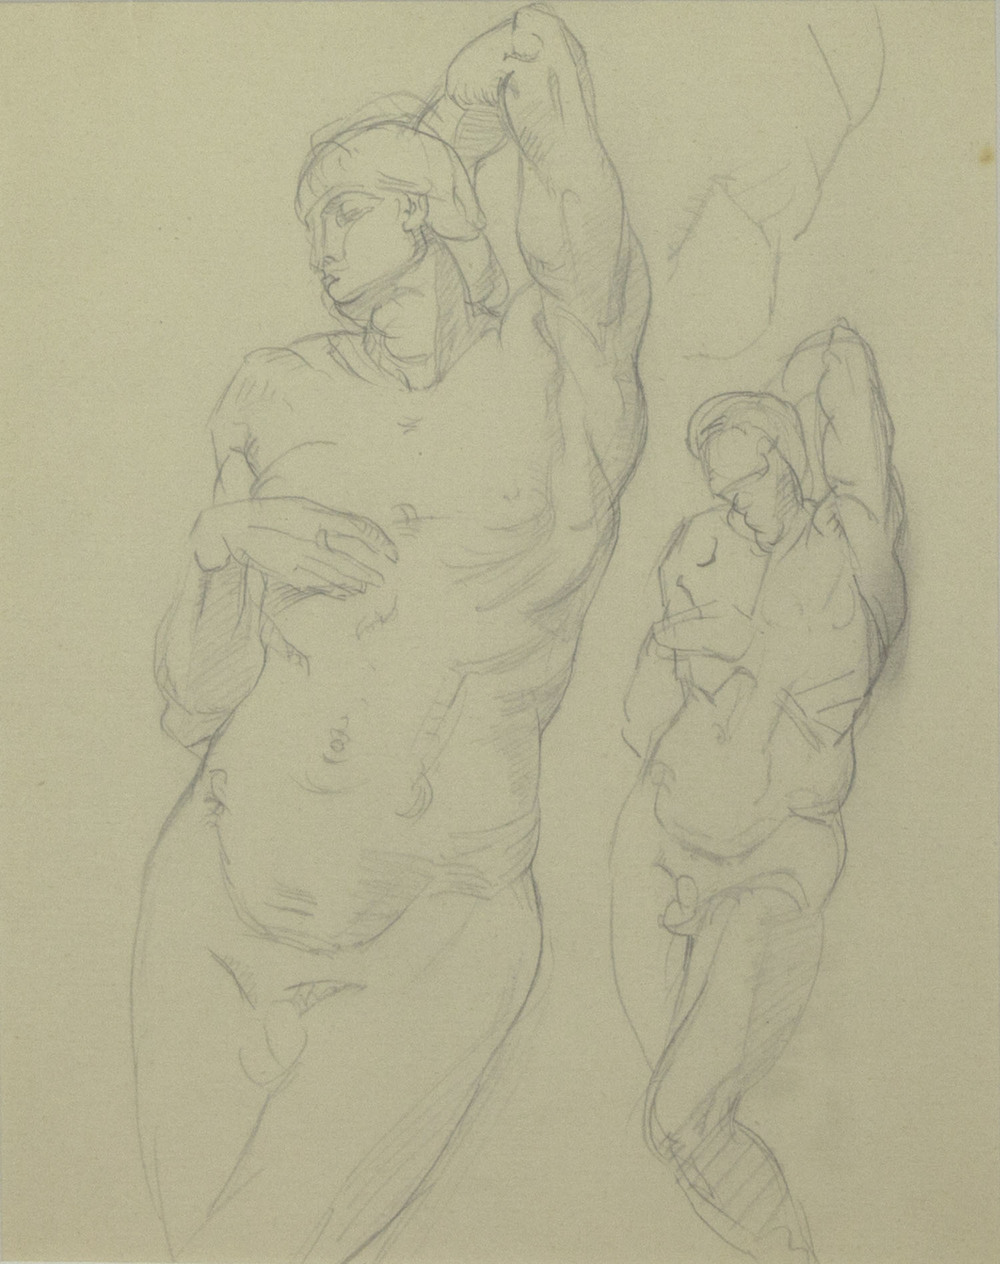 Mary Swanzy 'Life Study' pencil drawing 25x20cm.jpg